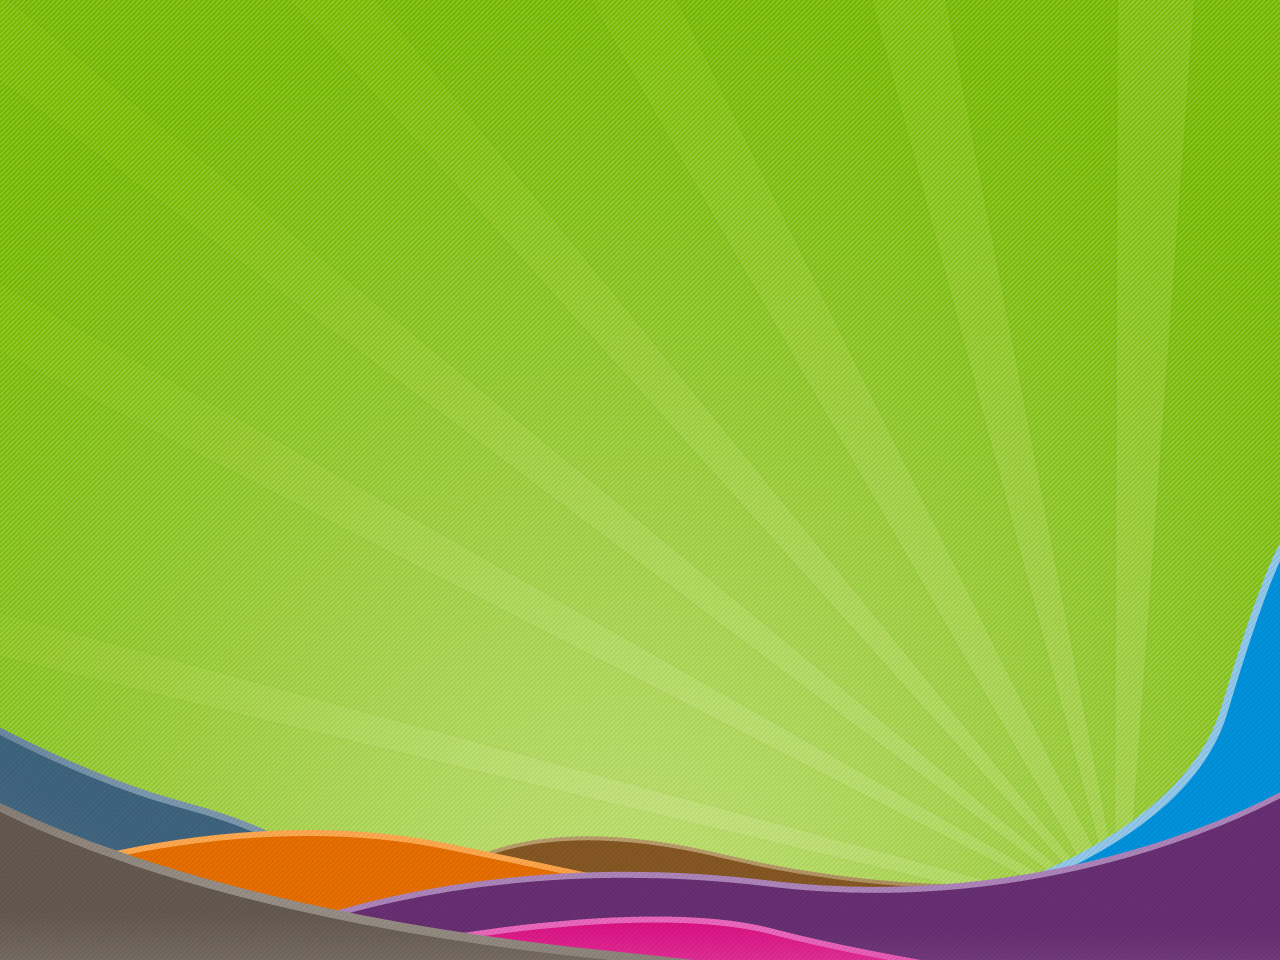 Synergy Blue Valley >> Valley of colors wallpapers   Valley of colors stock photos